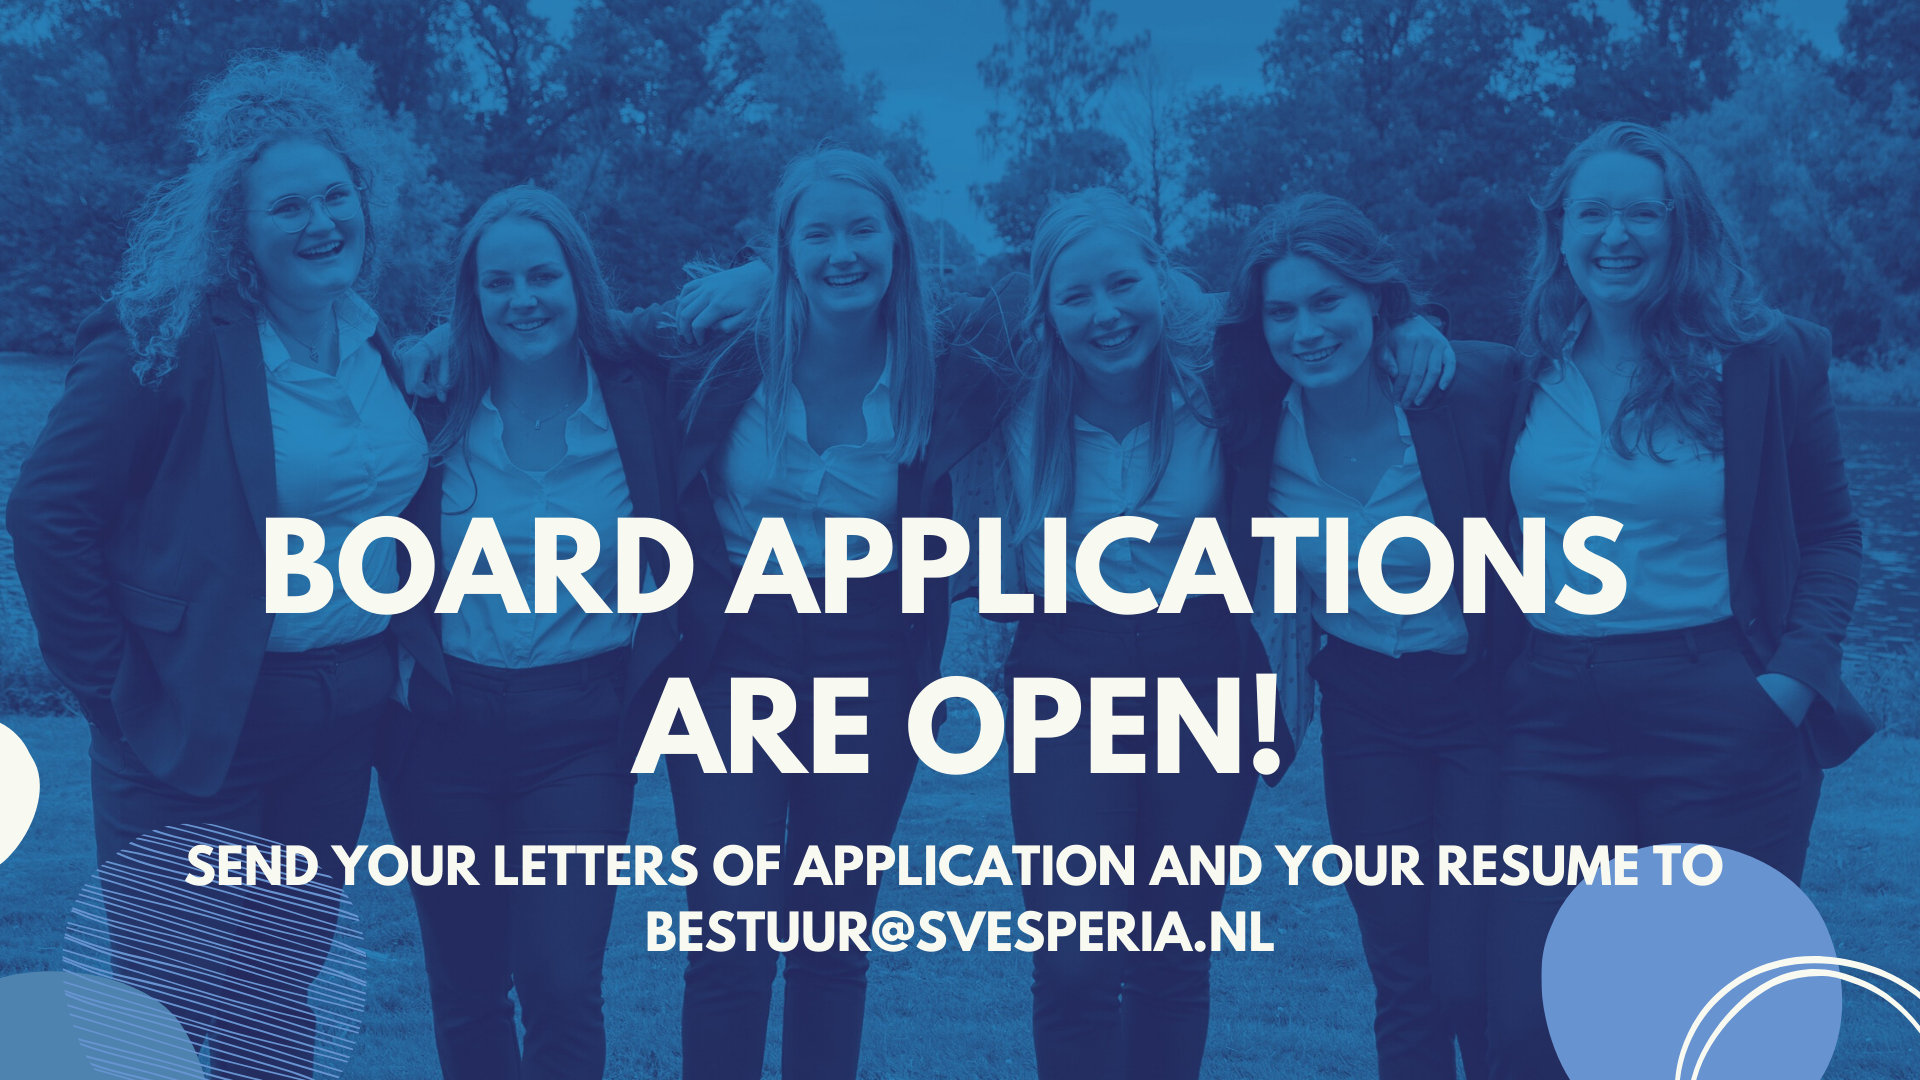 Board applications are open!